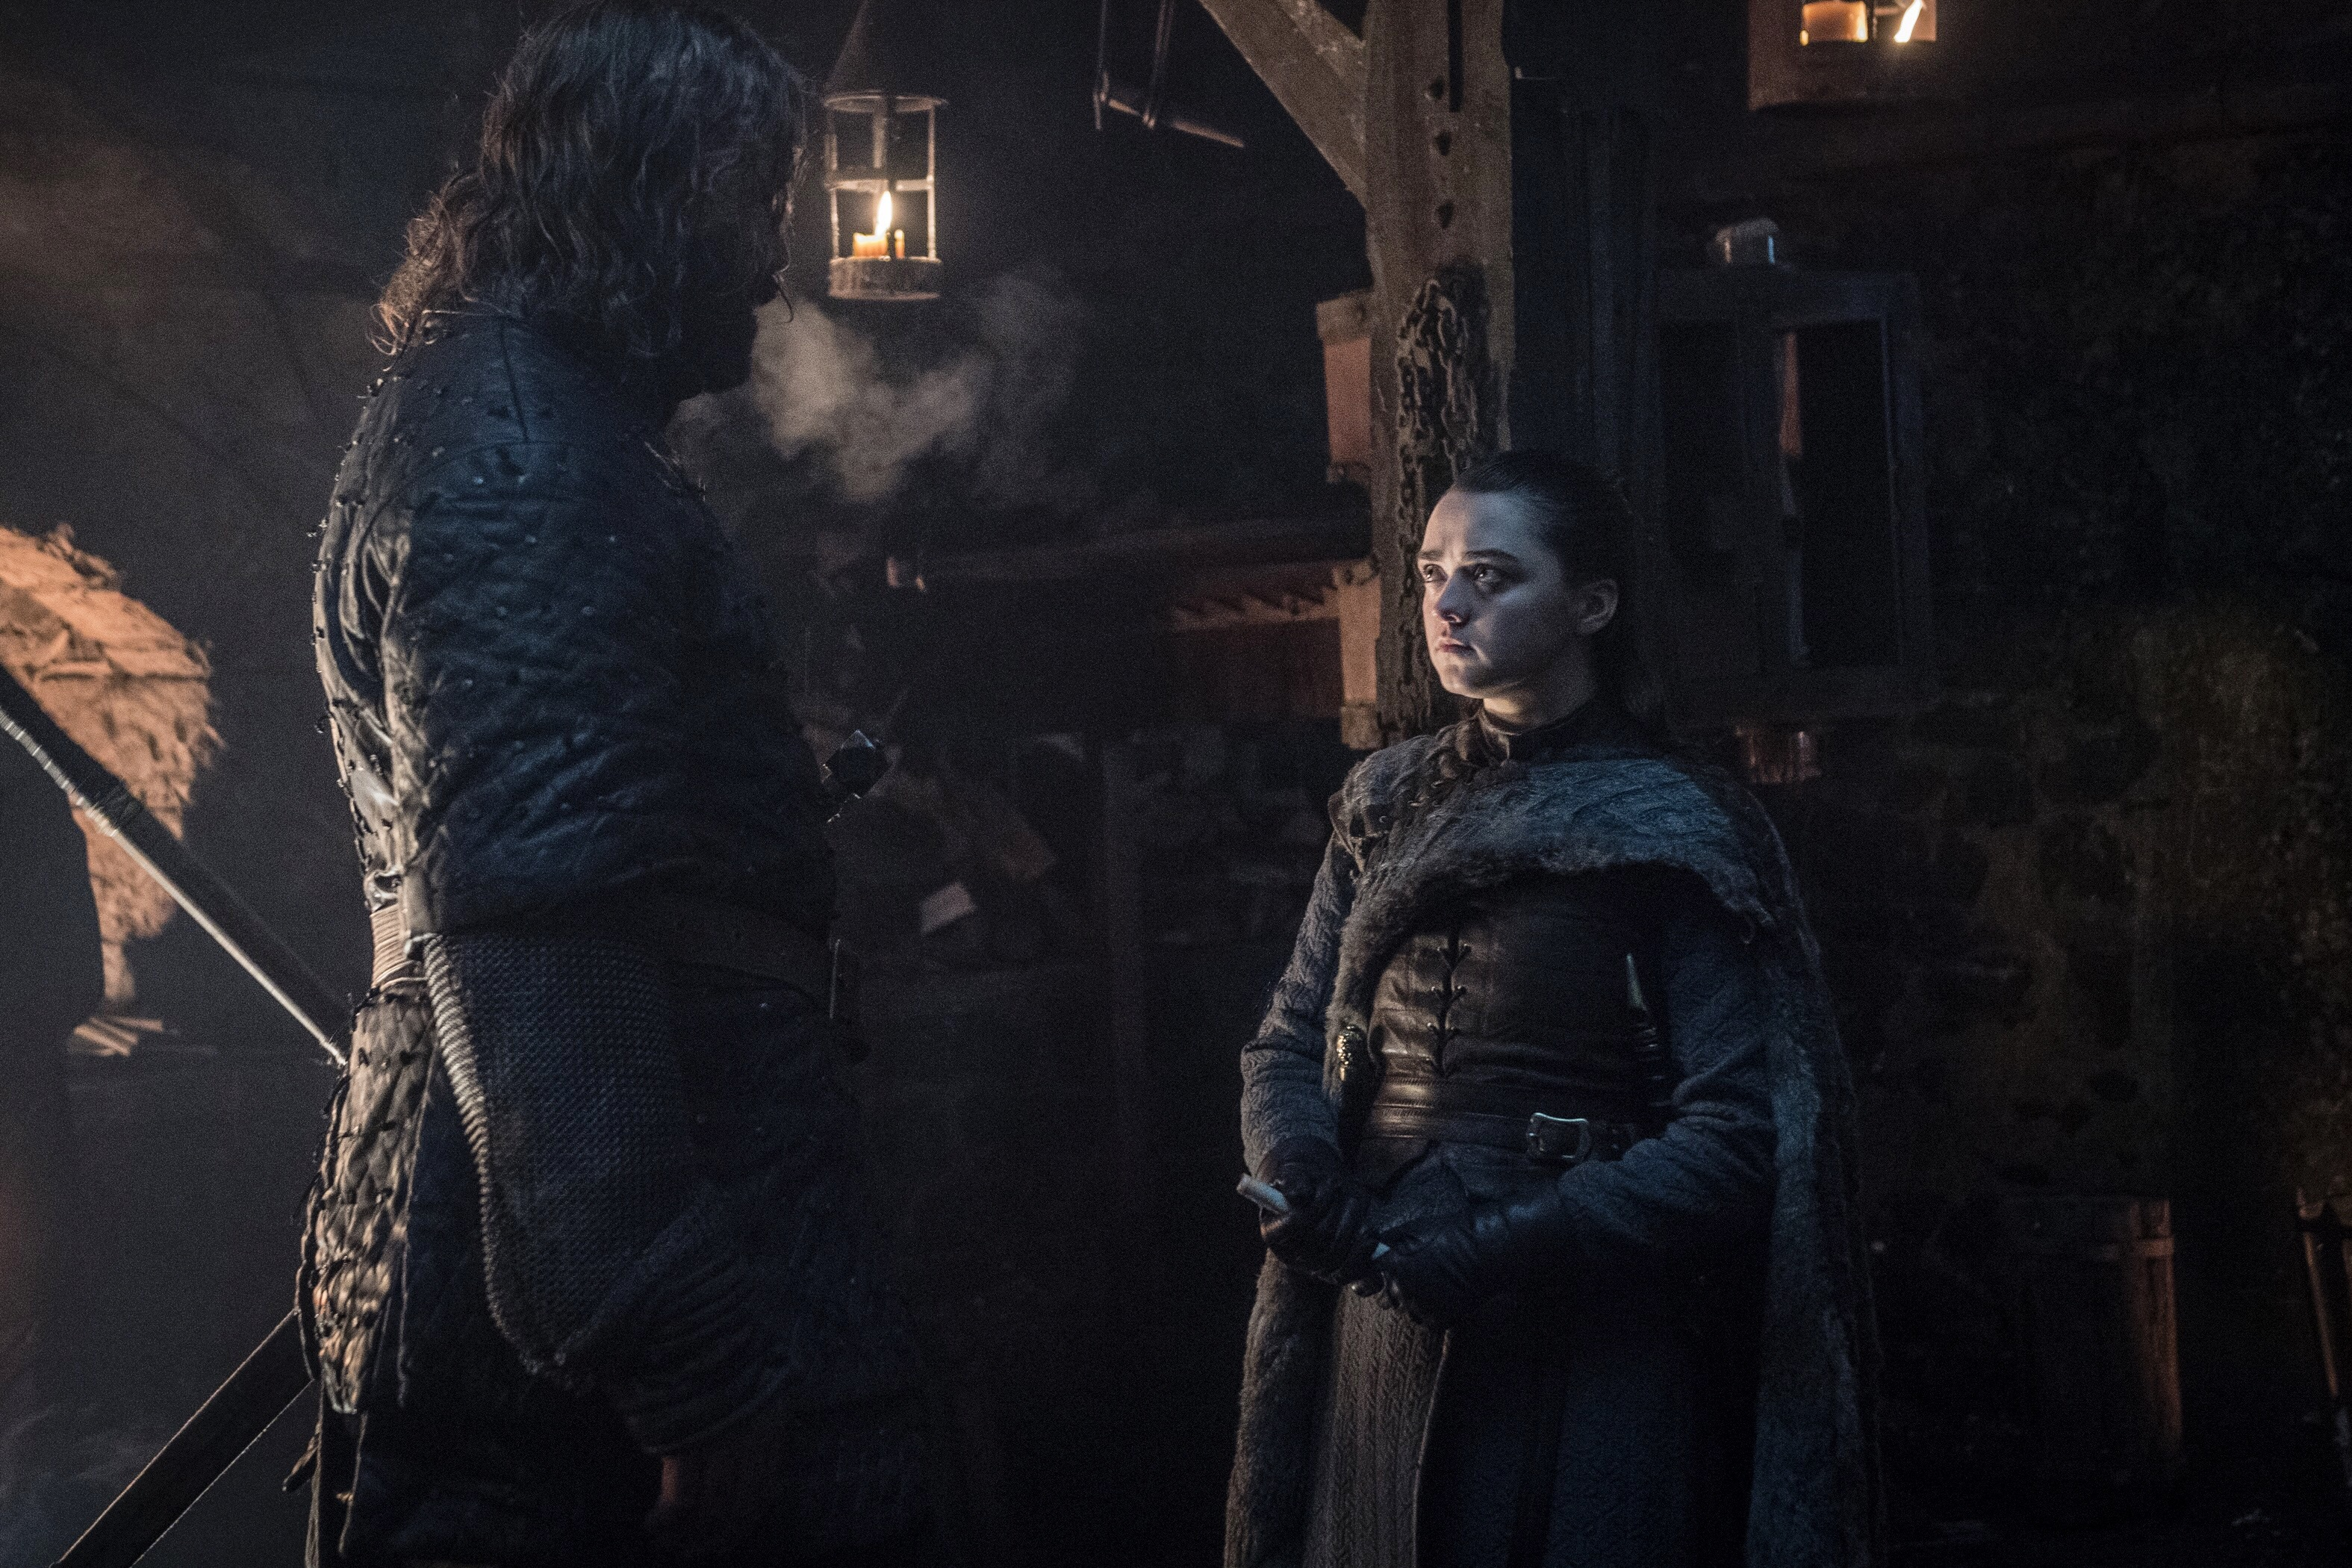 Game Of Thrones Season Premiere Close Up Arya And The Hound